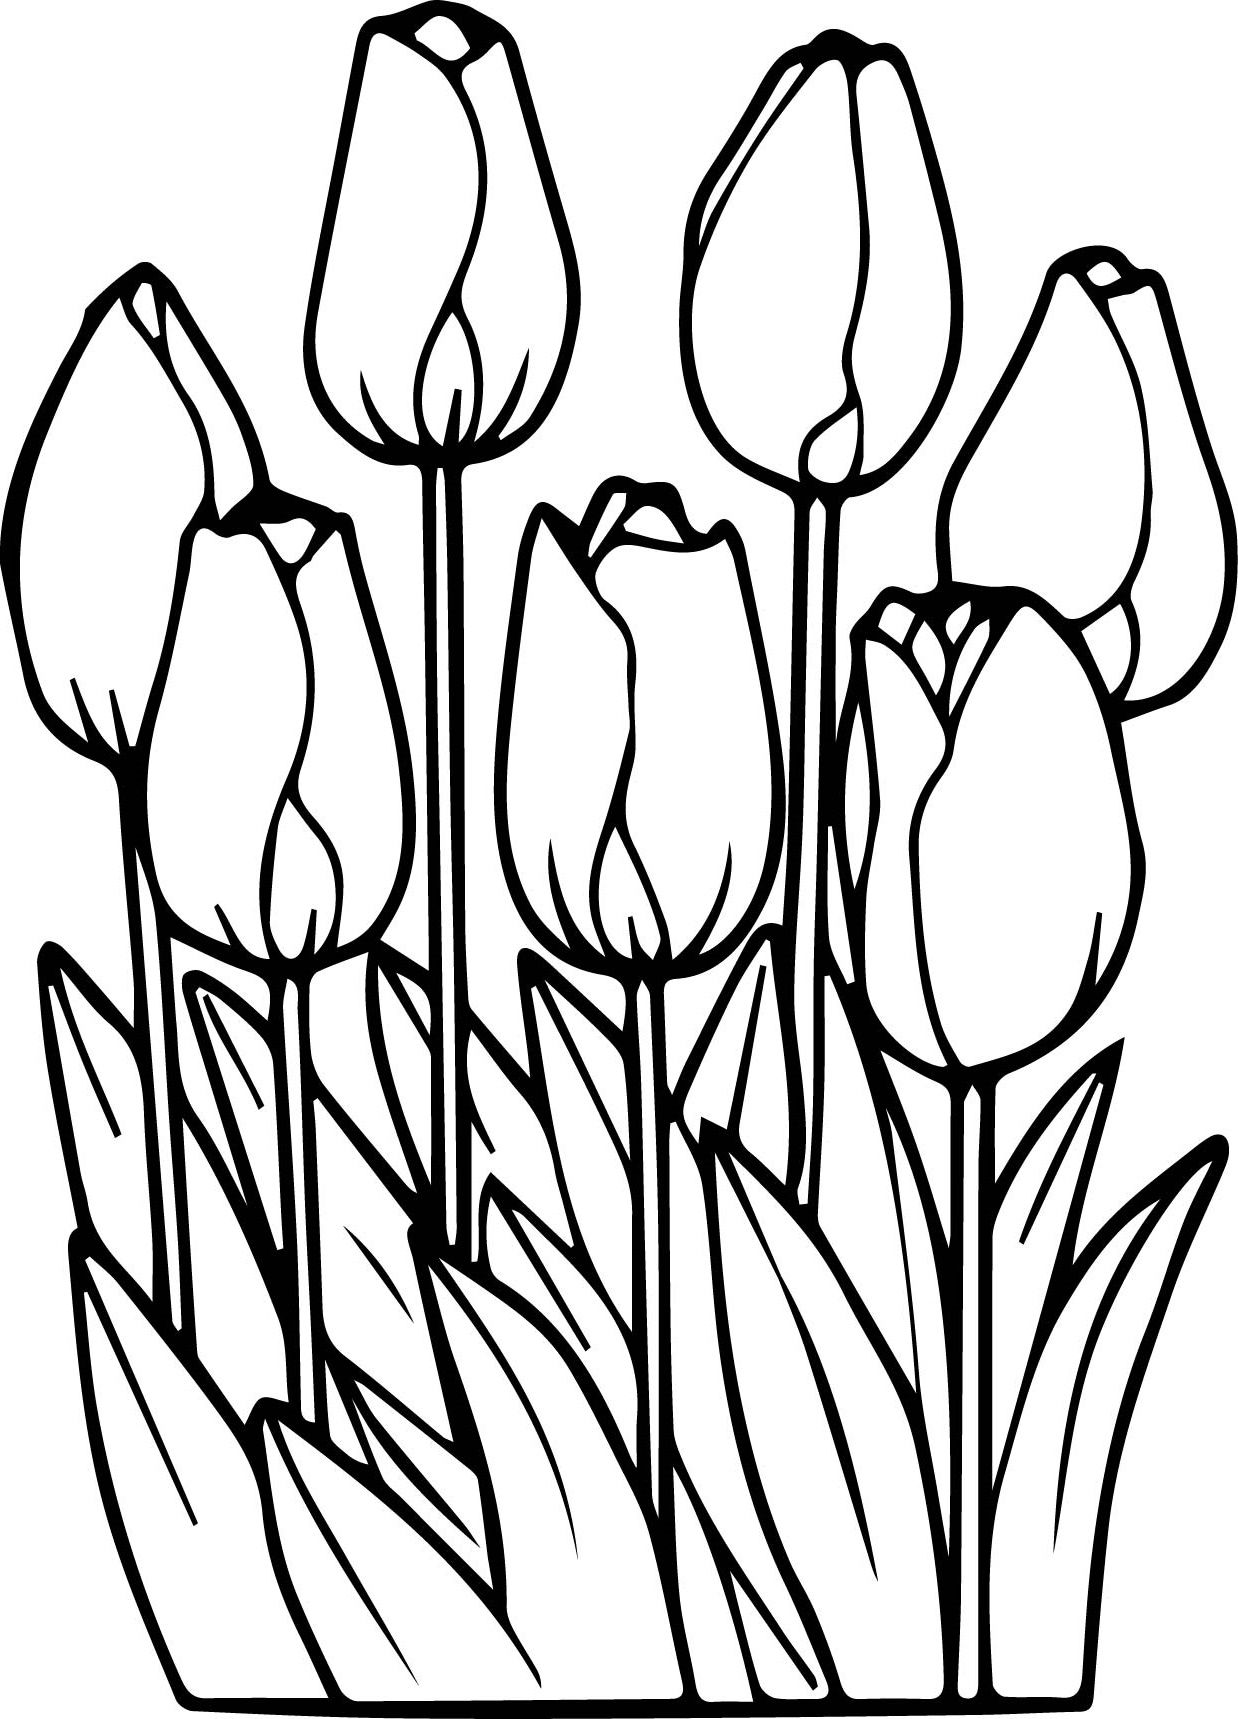 Printable Tulips Flower Coloring Pages